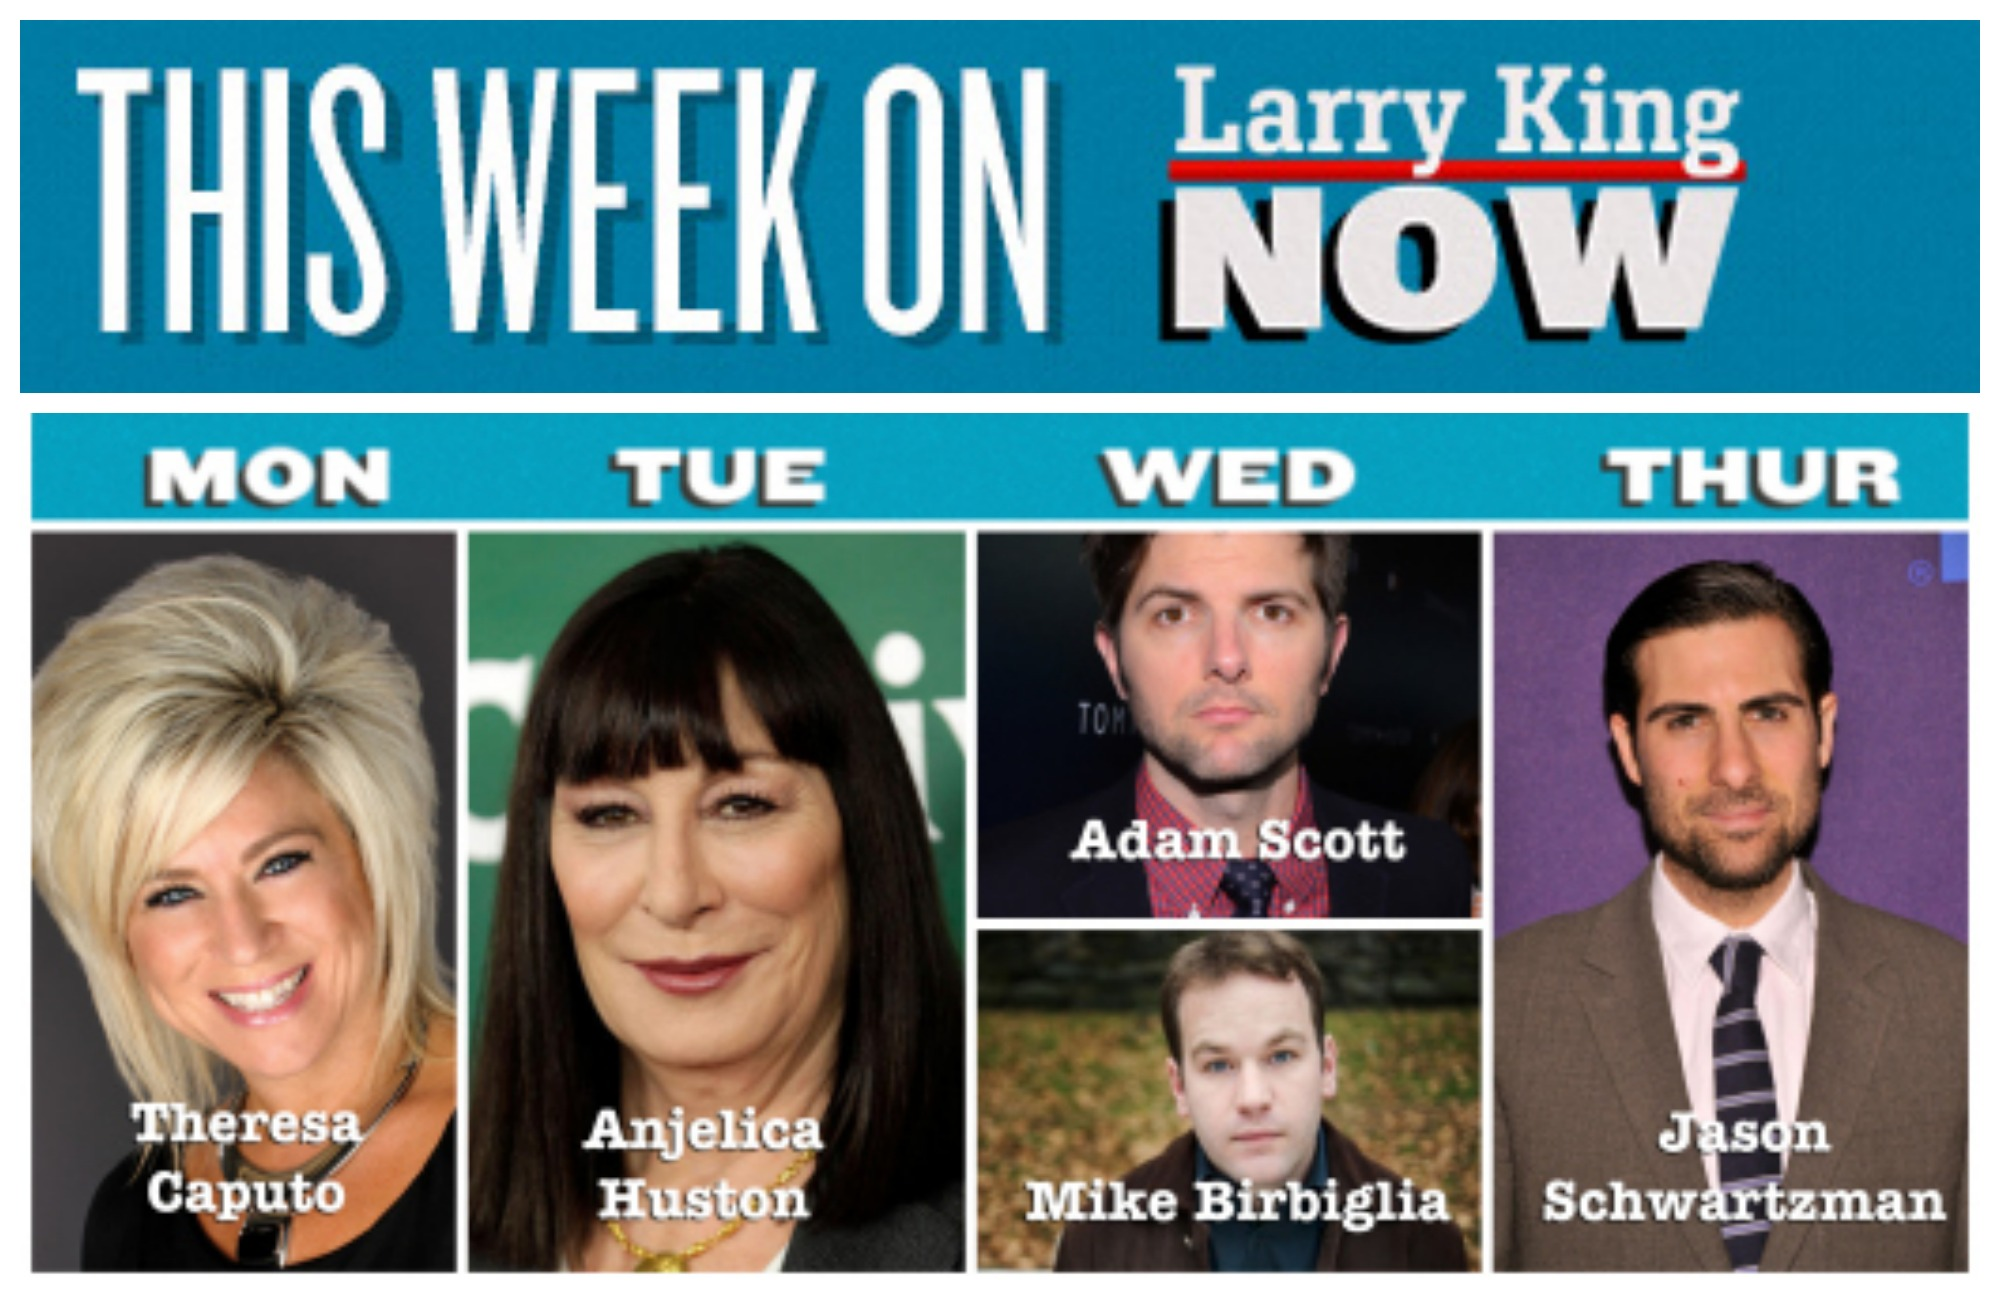 Theresa Caputo, Anjelica Huston, Adam Scott, Mike Birbiglia & Jason Schwartzman on Larry King Now